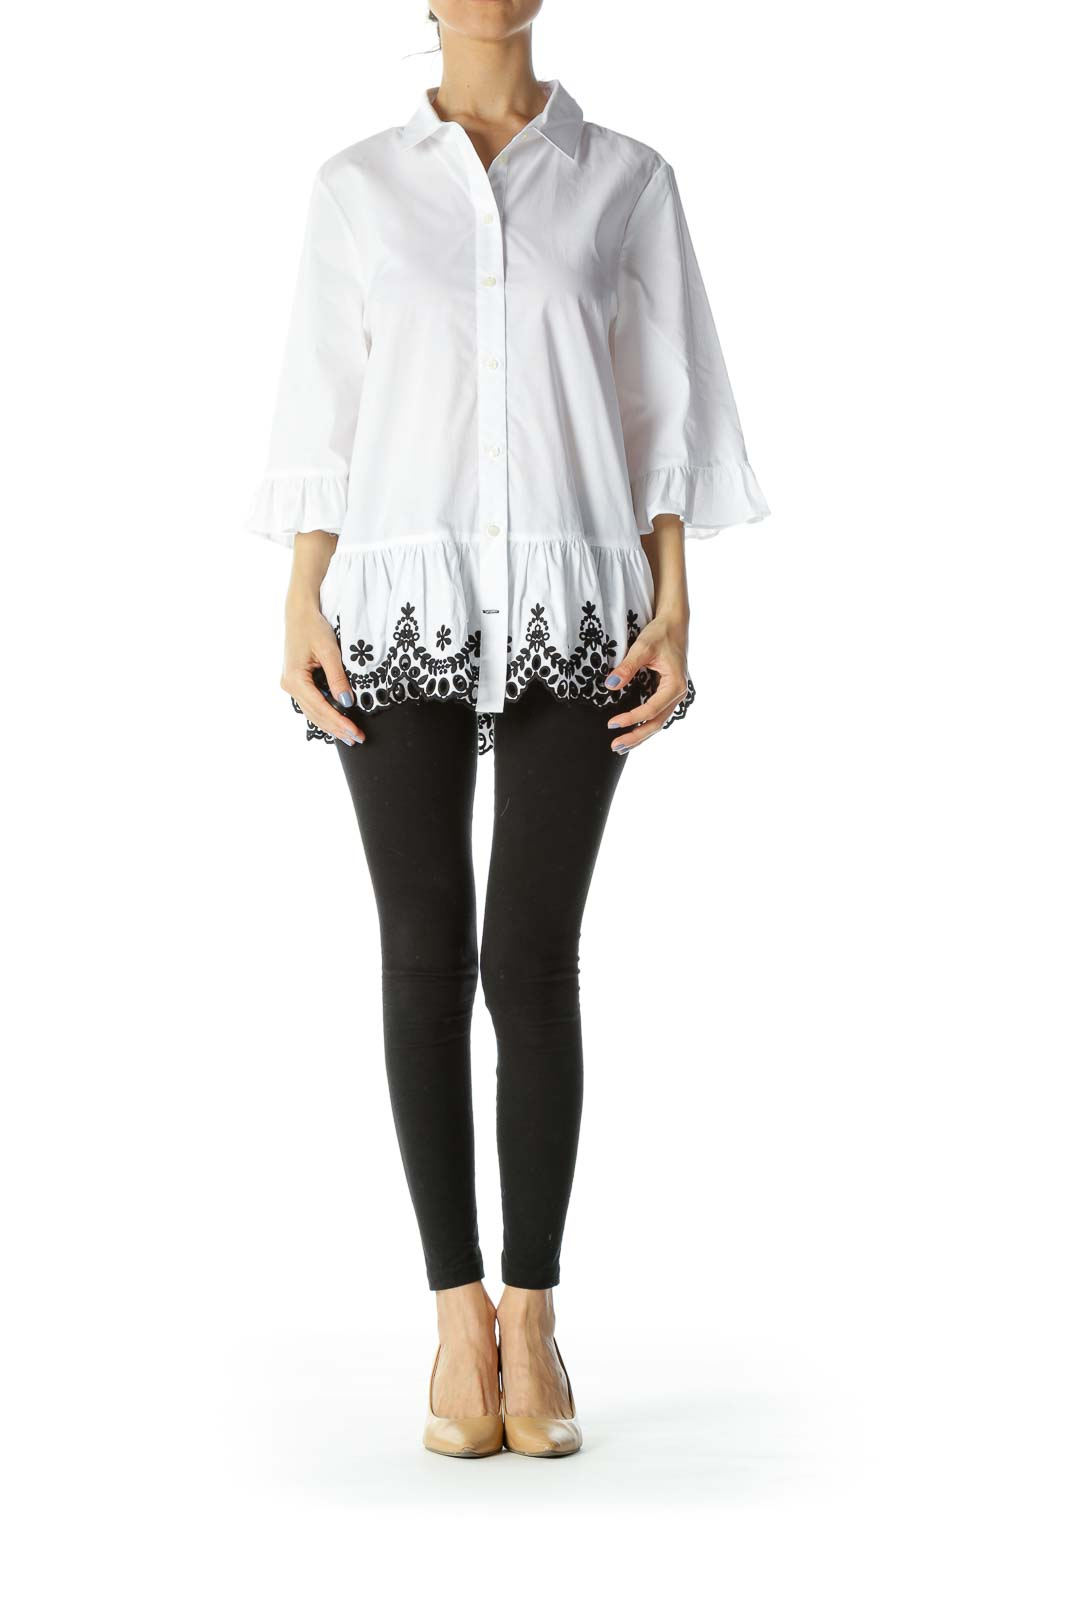 Black/White Buttoned 3/4-Sleeves Embroidered Flared Shirt